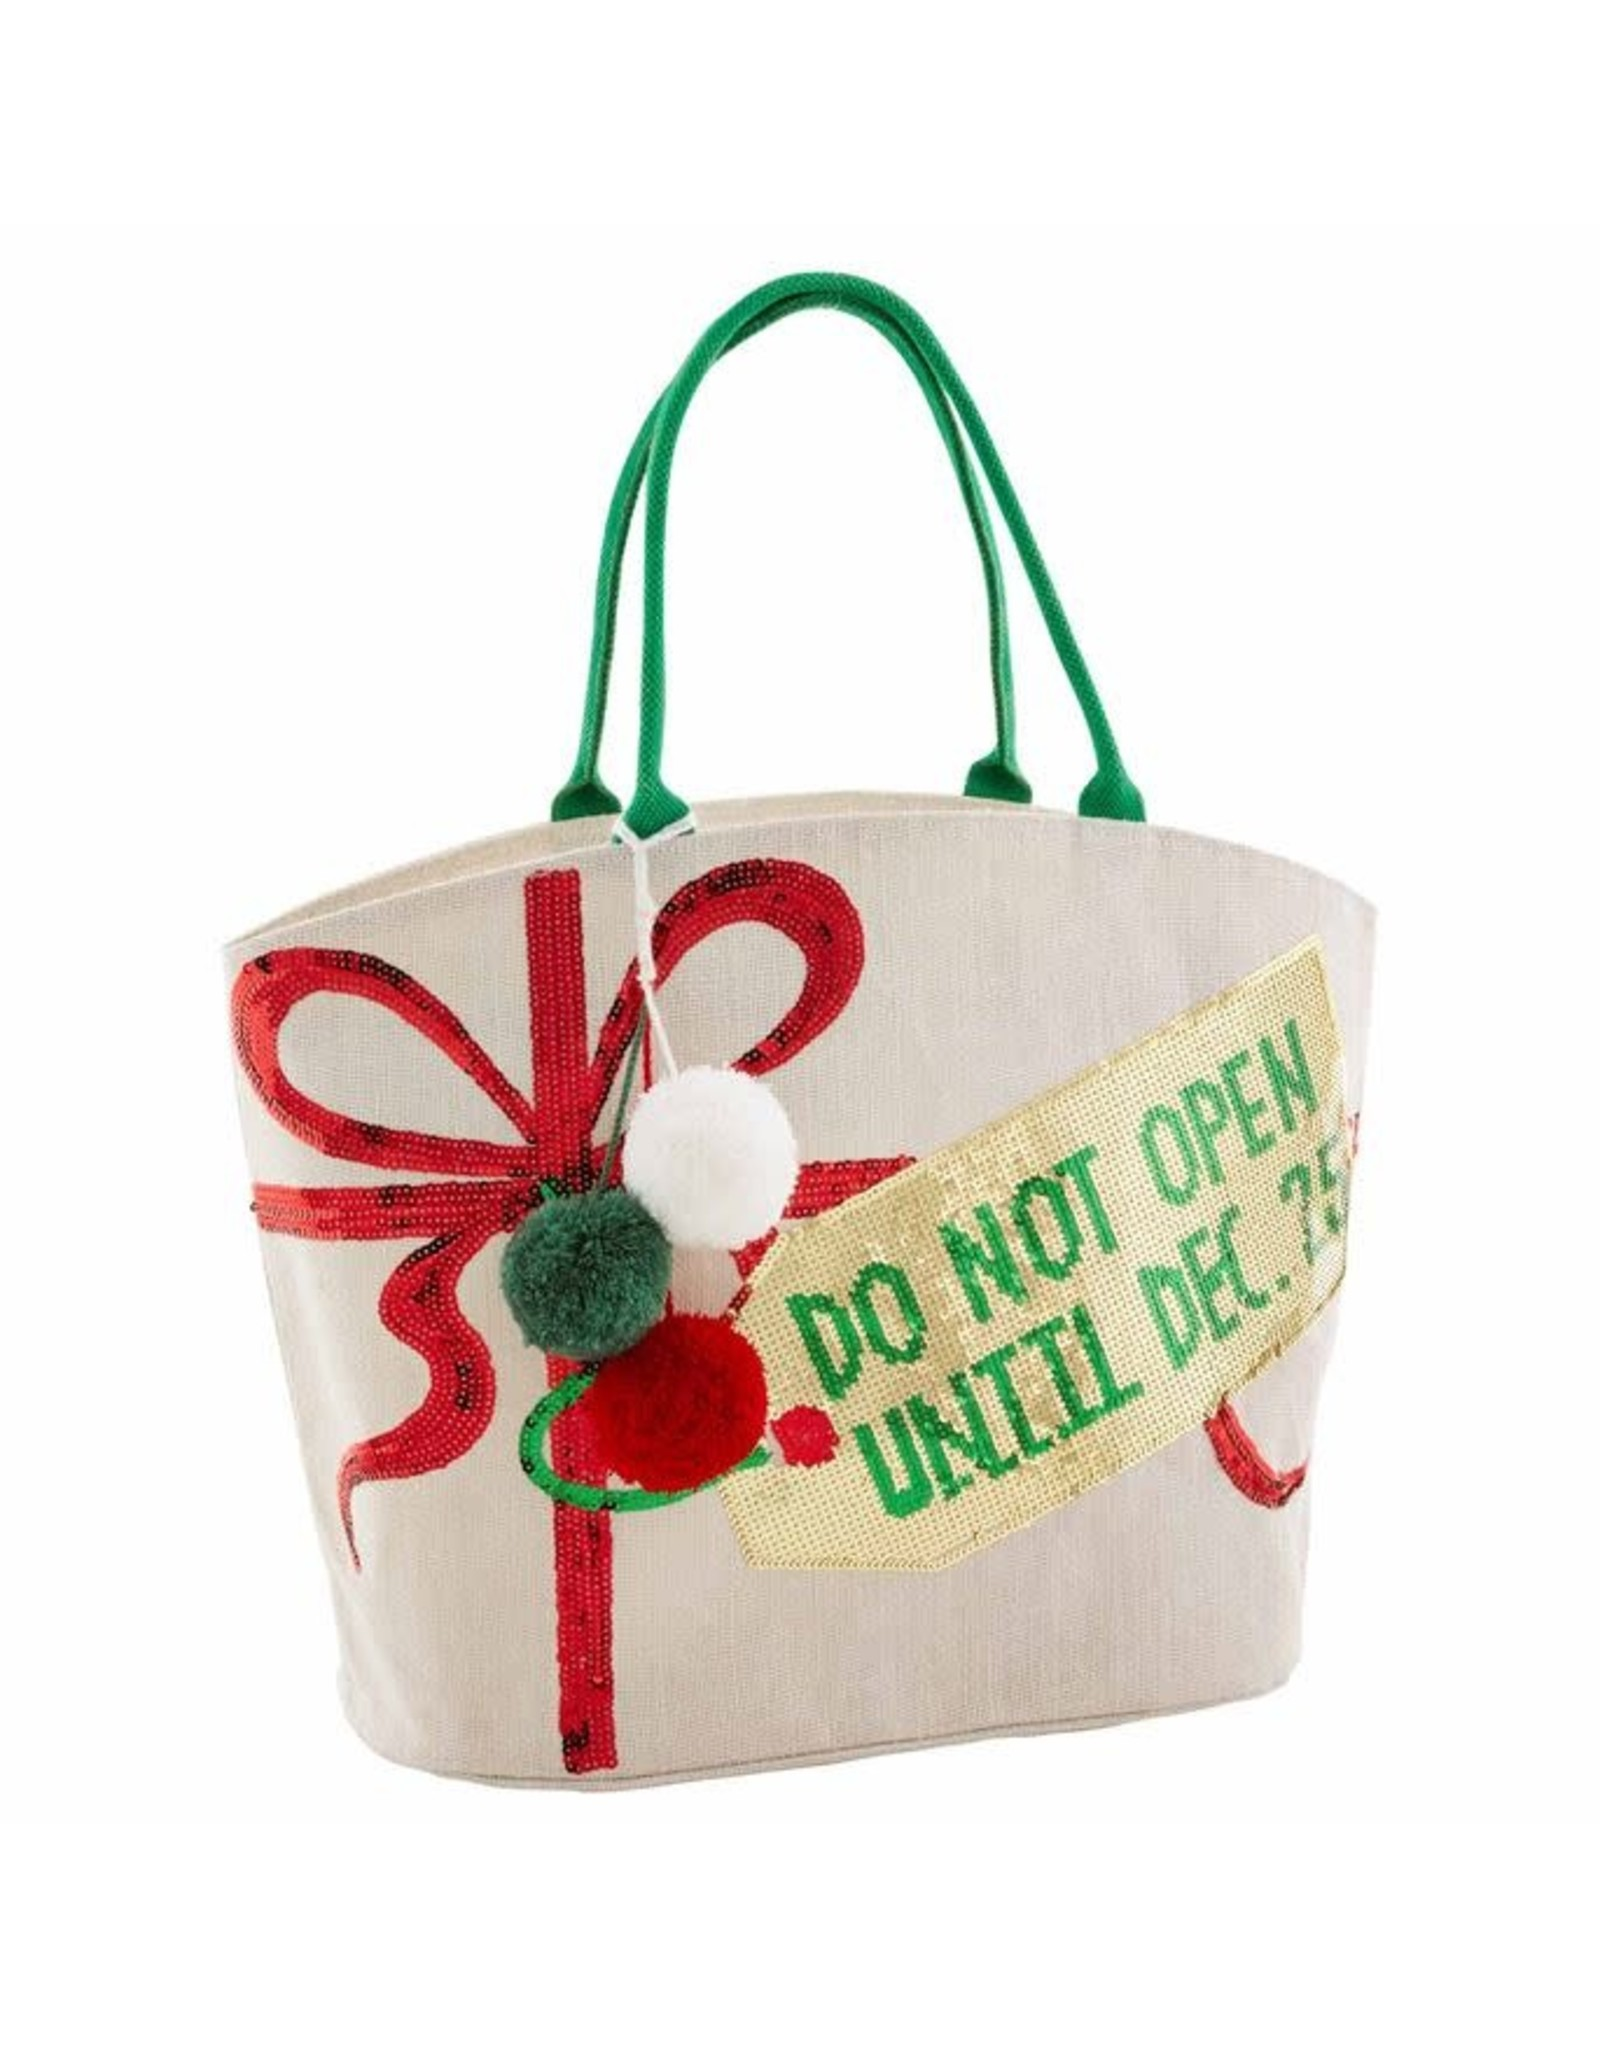 Mudpie Mud Pie- Do Not Open Dazzle Tote